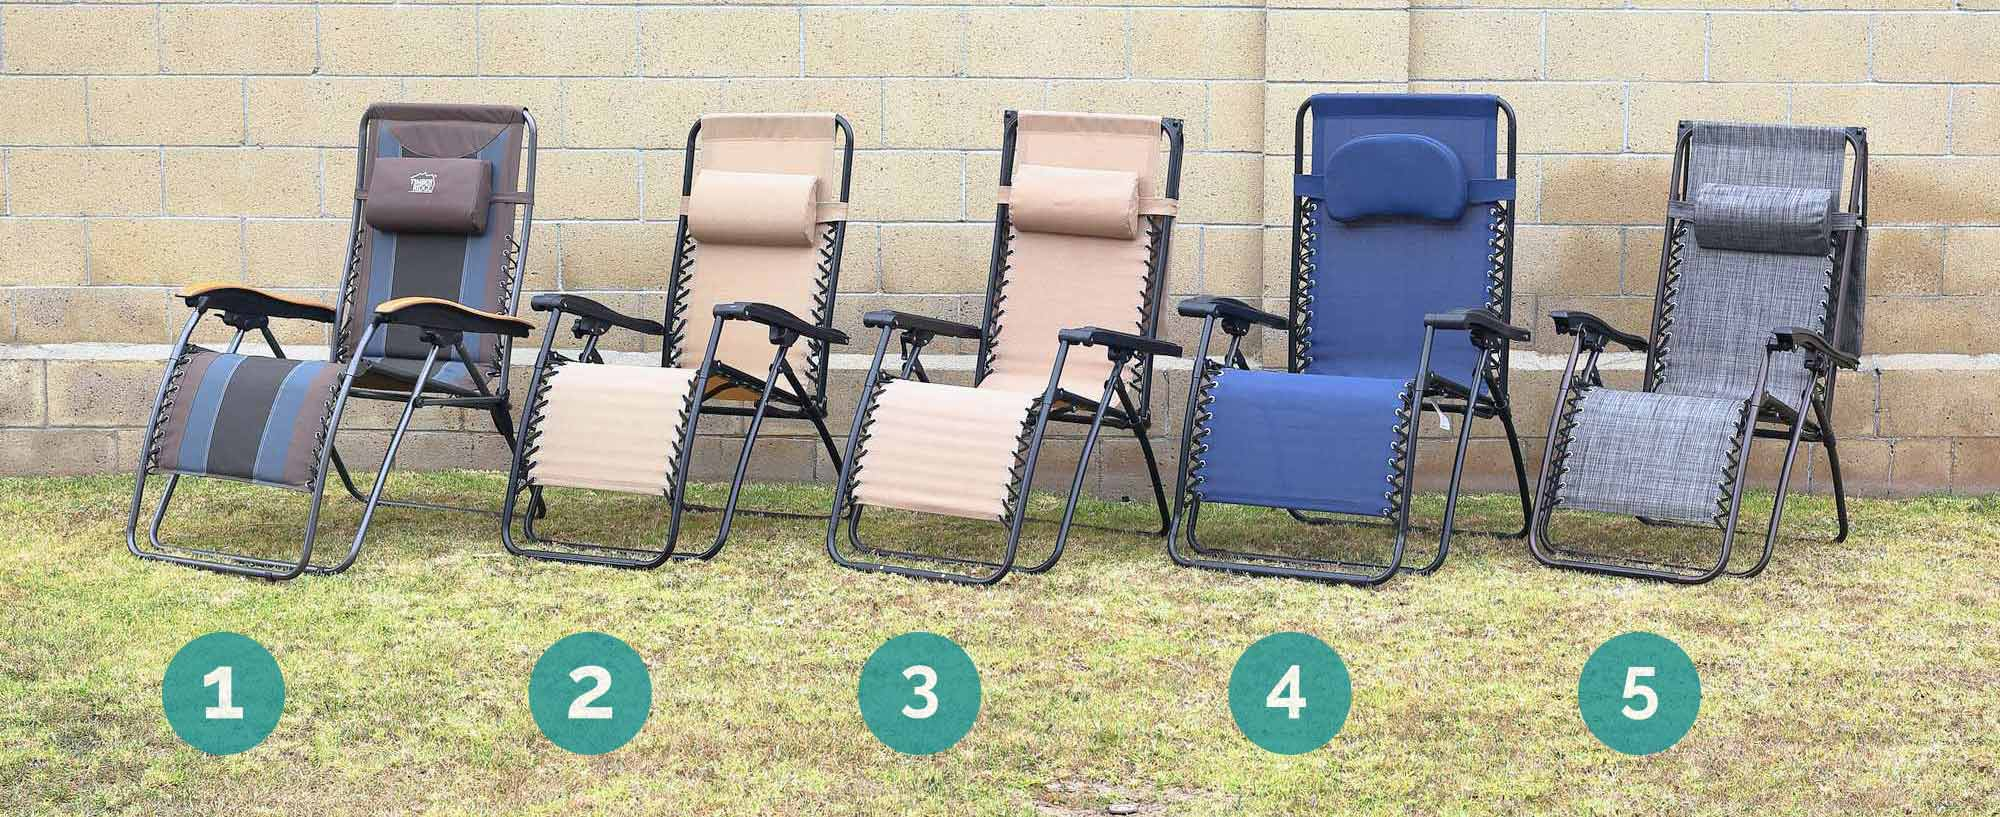 Outdoor Teppich Qvc Qvc Lounge Chair Top Qvc Lounge Chair With Qvc Lounge Chair